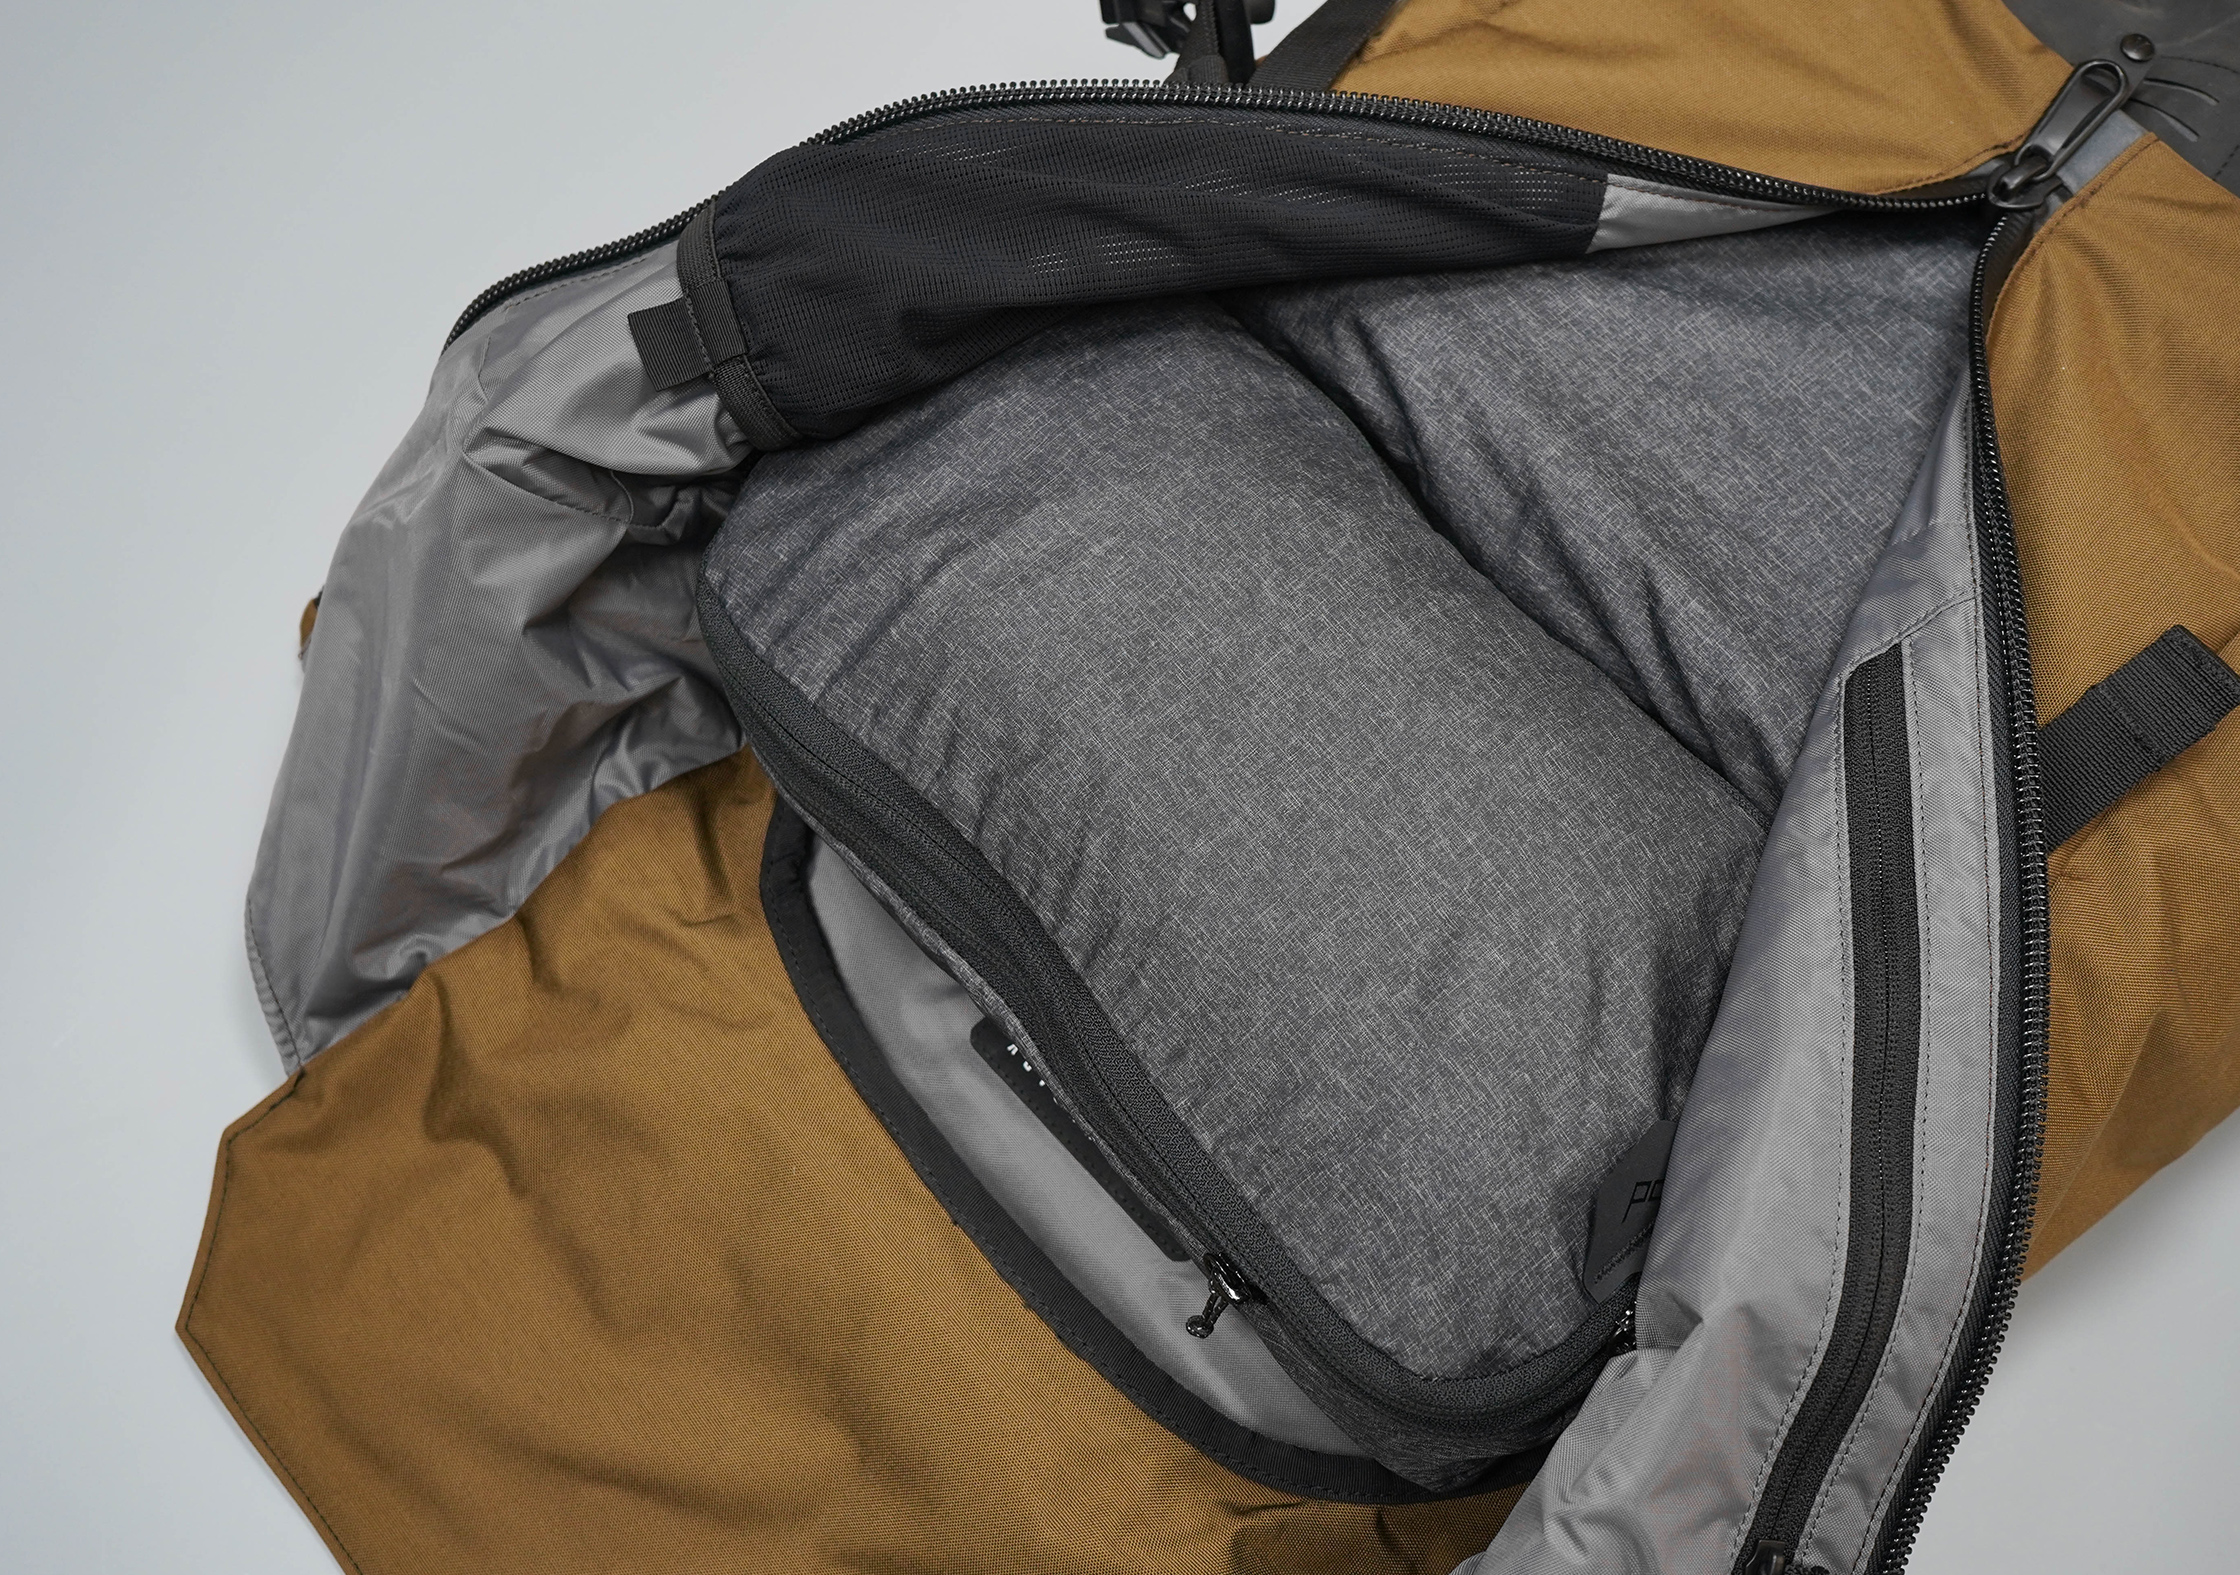 Boundary Supply Prima System Packing Cubes